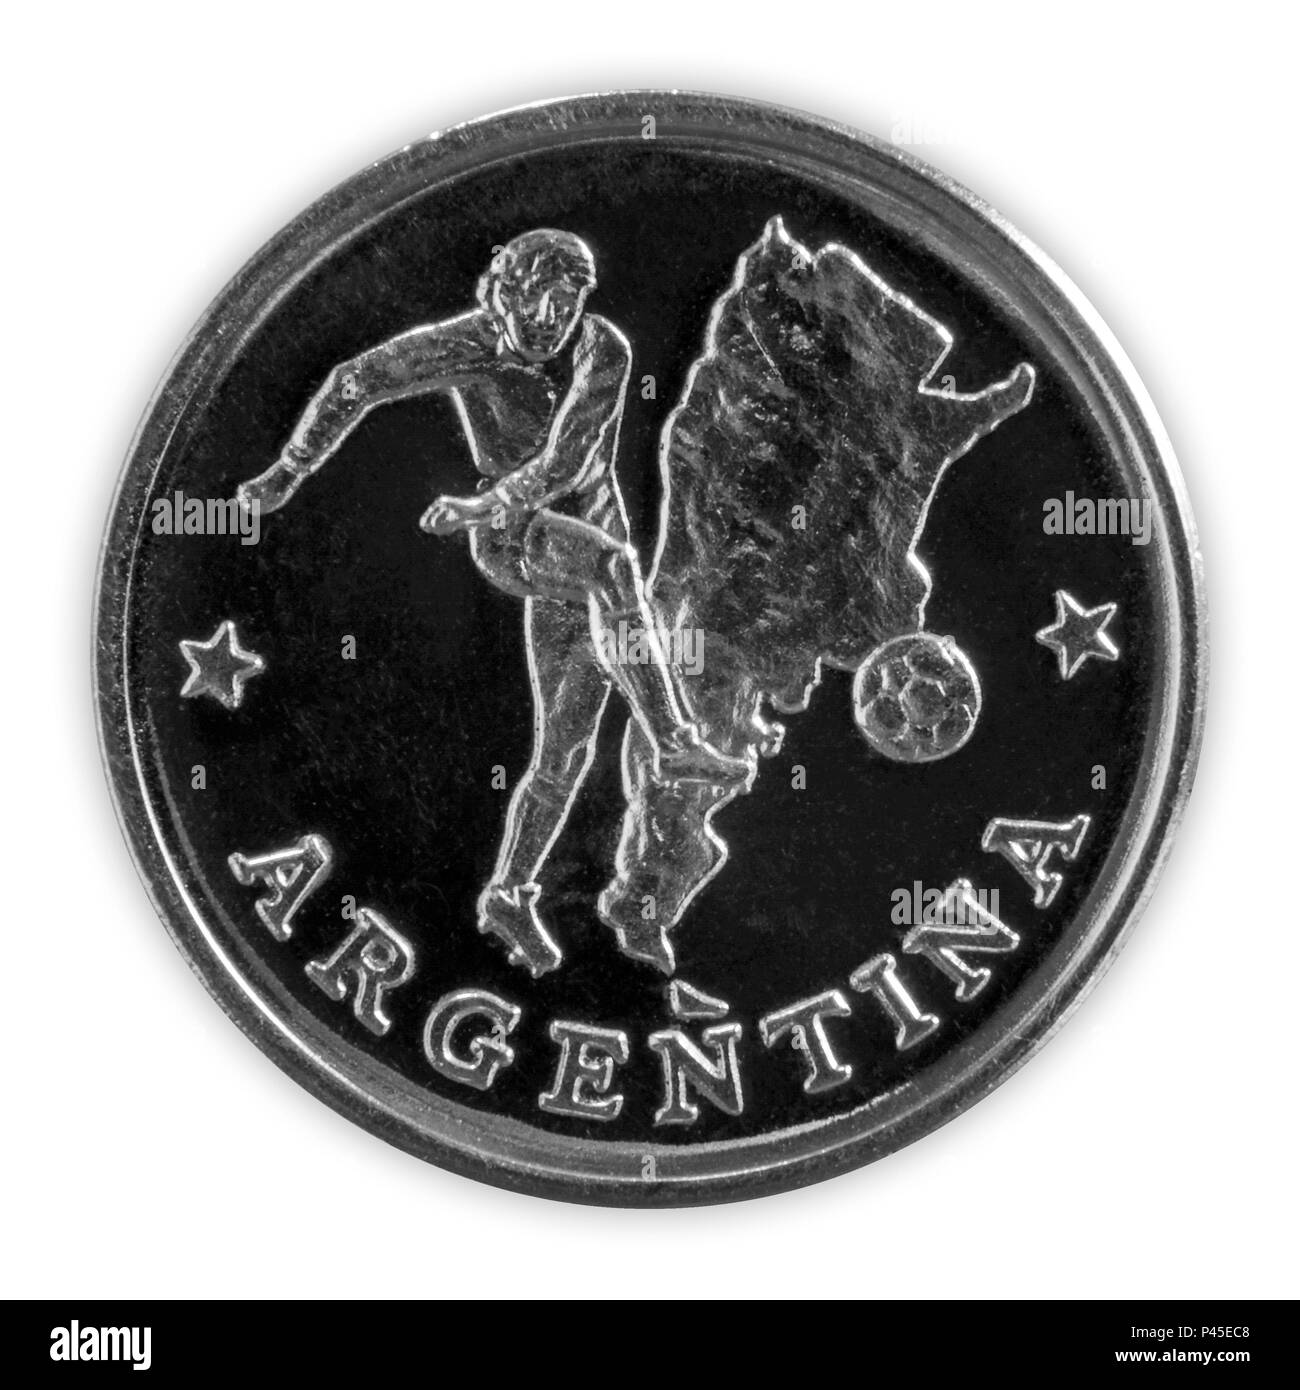 ARGENTINA - June 18, 2018: FIFA World Cup - Commemorative coin featuring a football player in the Argentinian team, titled Argentina, with a map of Ar - Stock Image